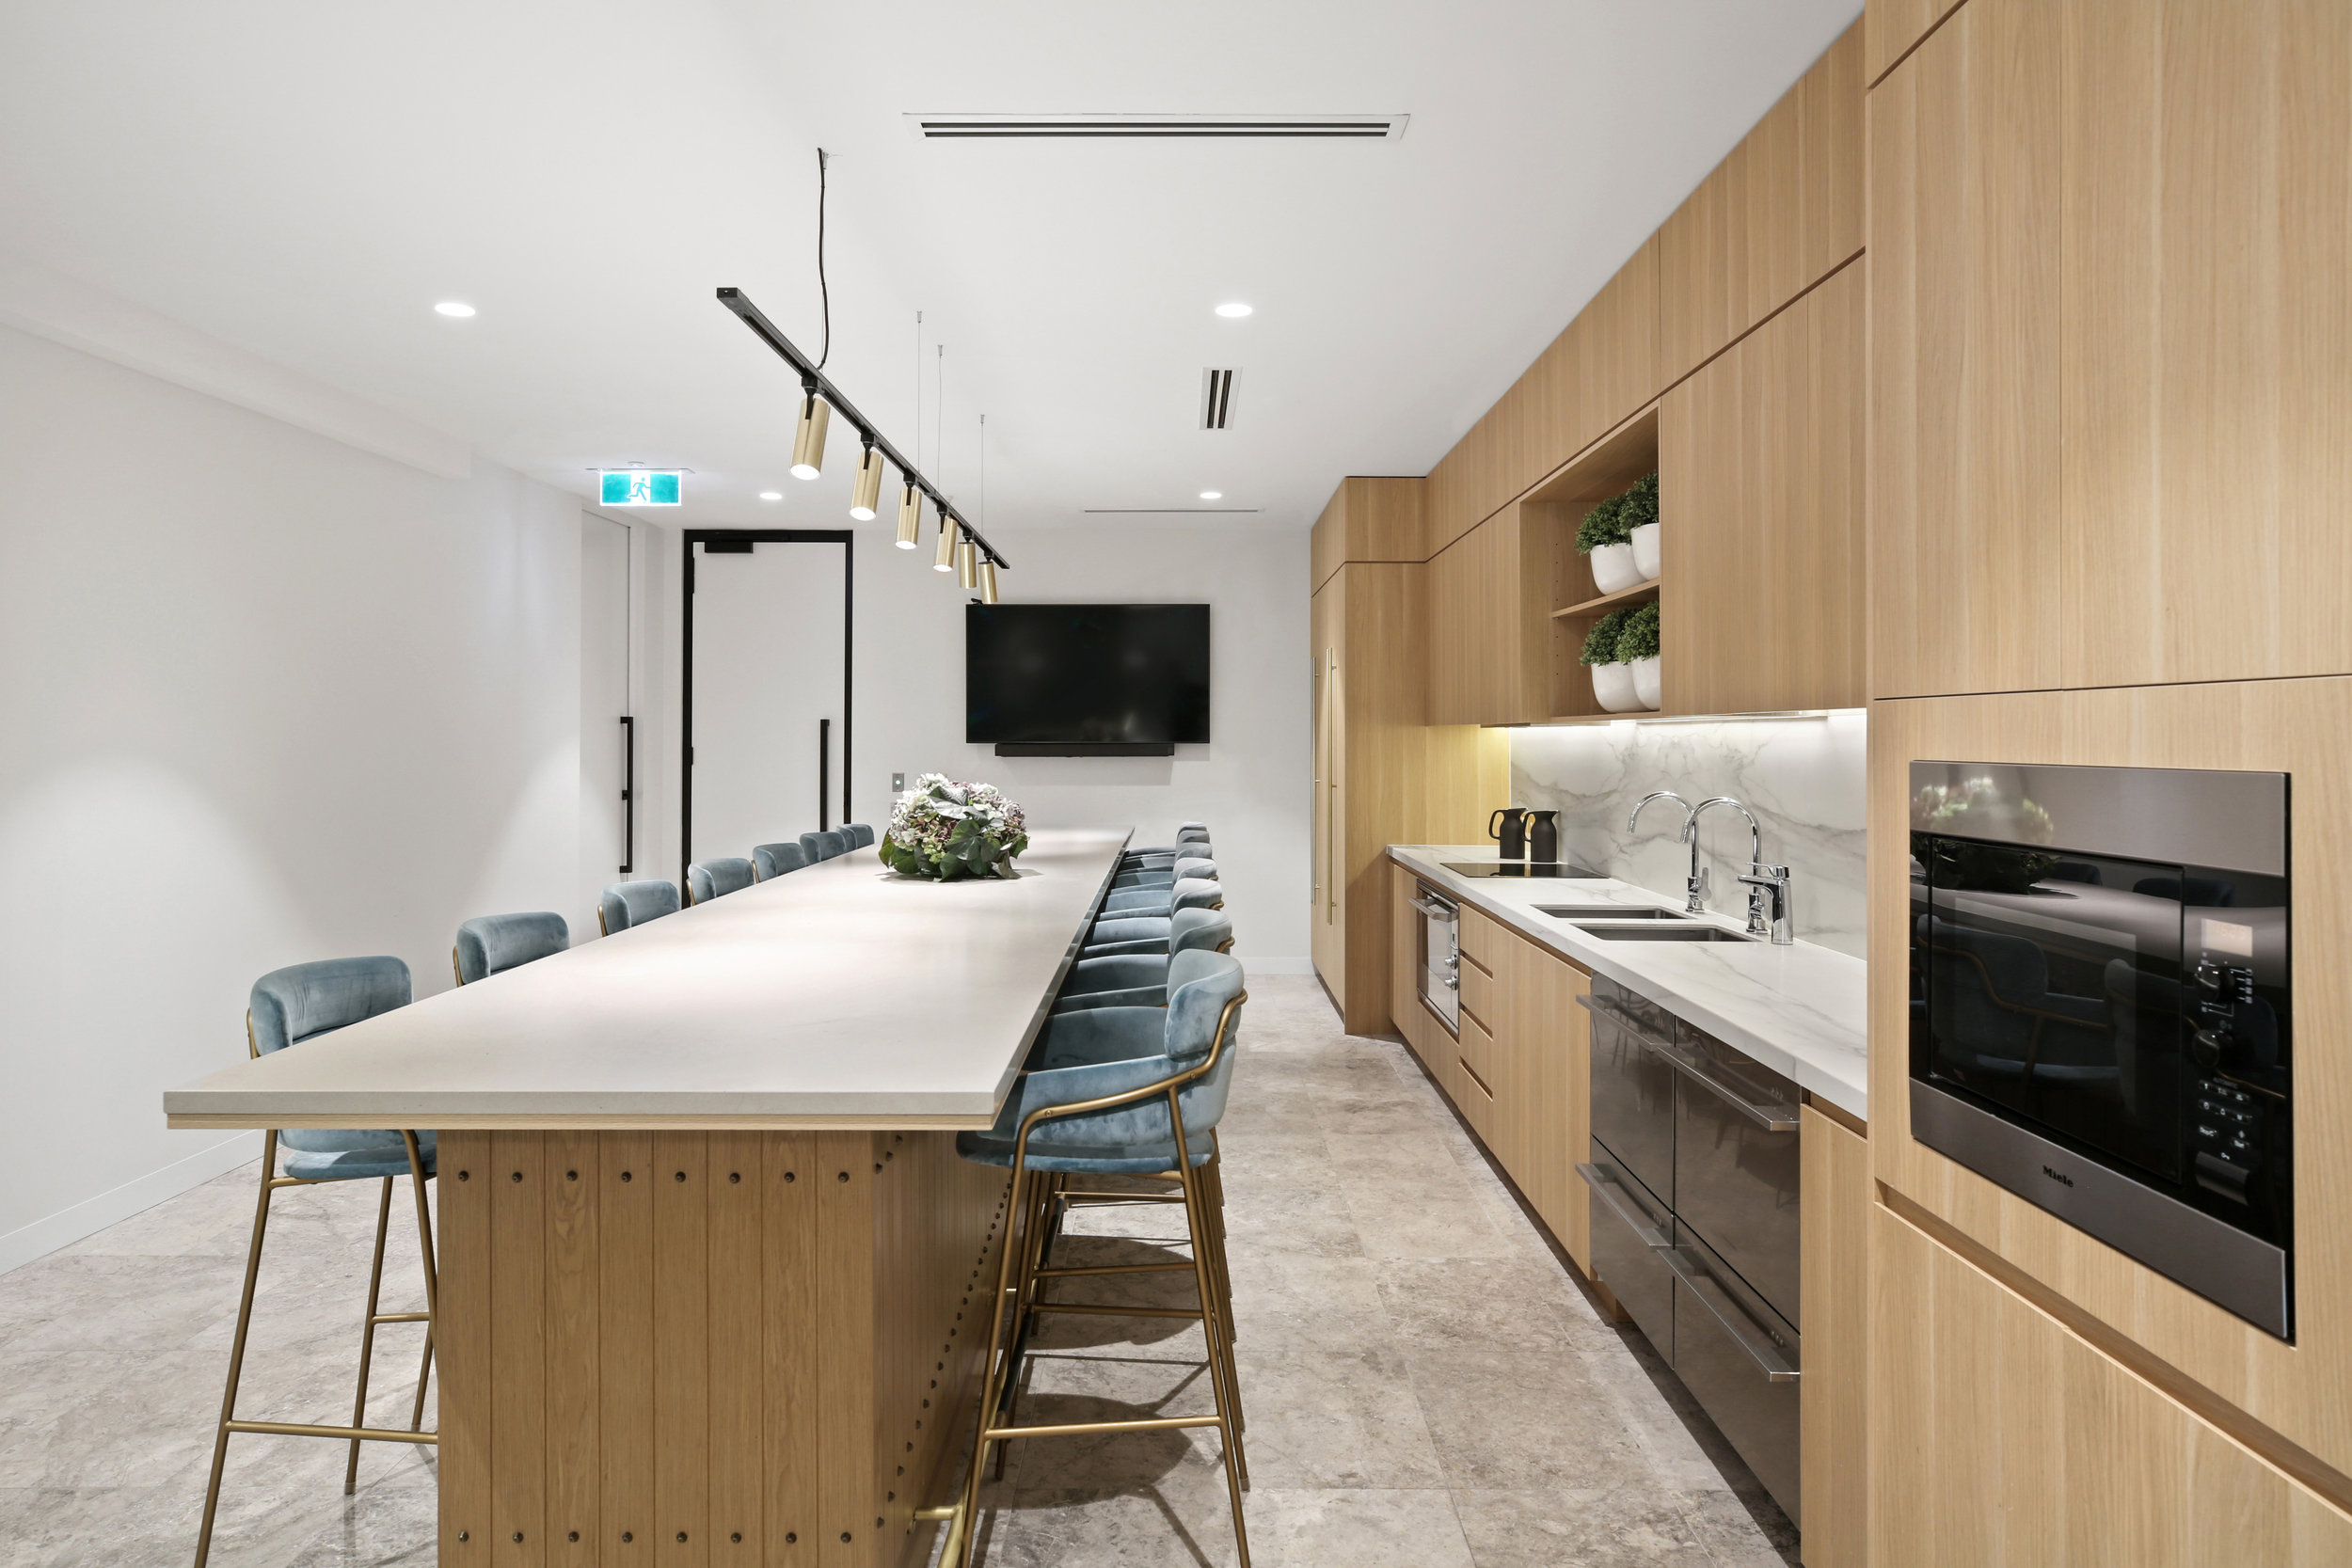 Valmont_KKR_1_Macquarie_Square_High_Kitchen_3.jpg